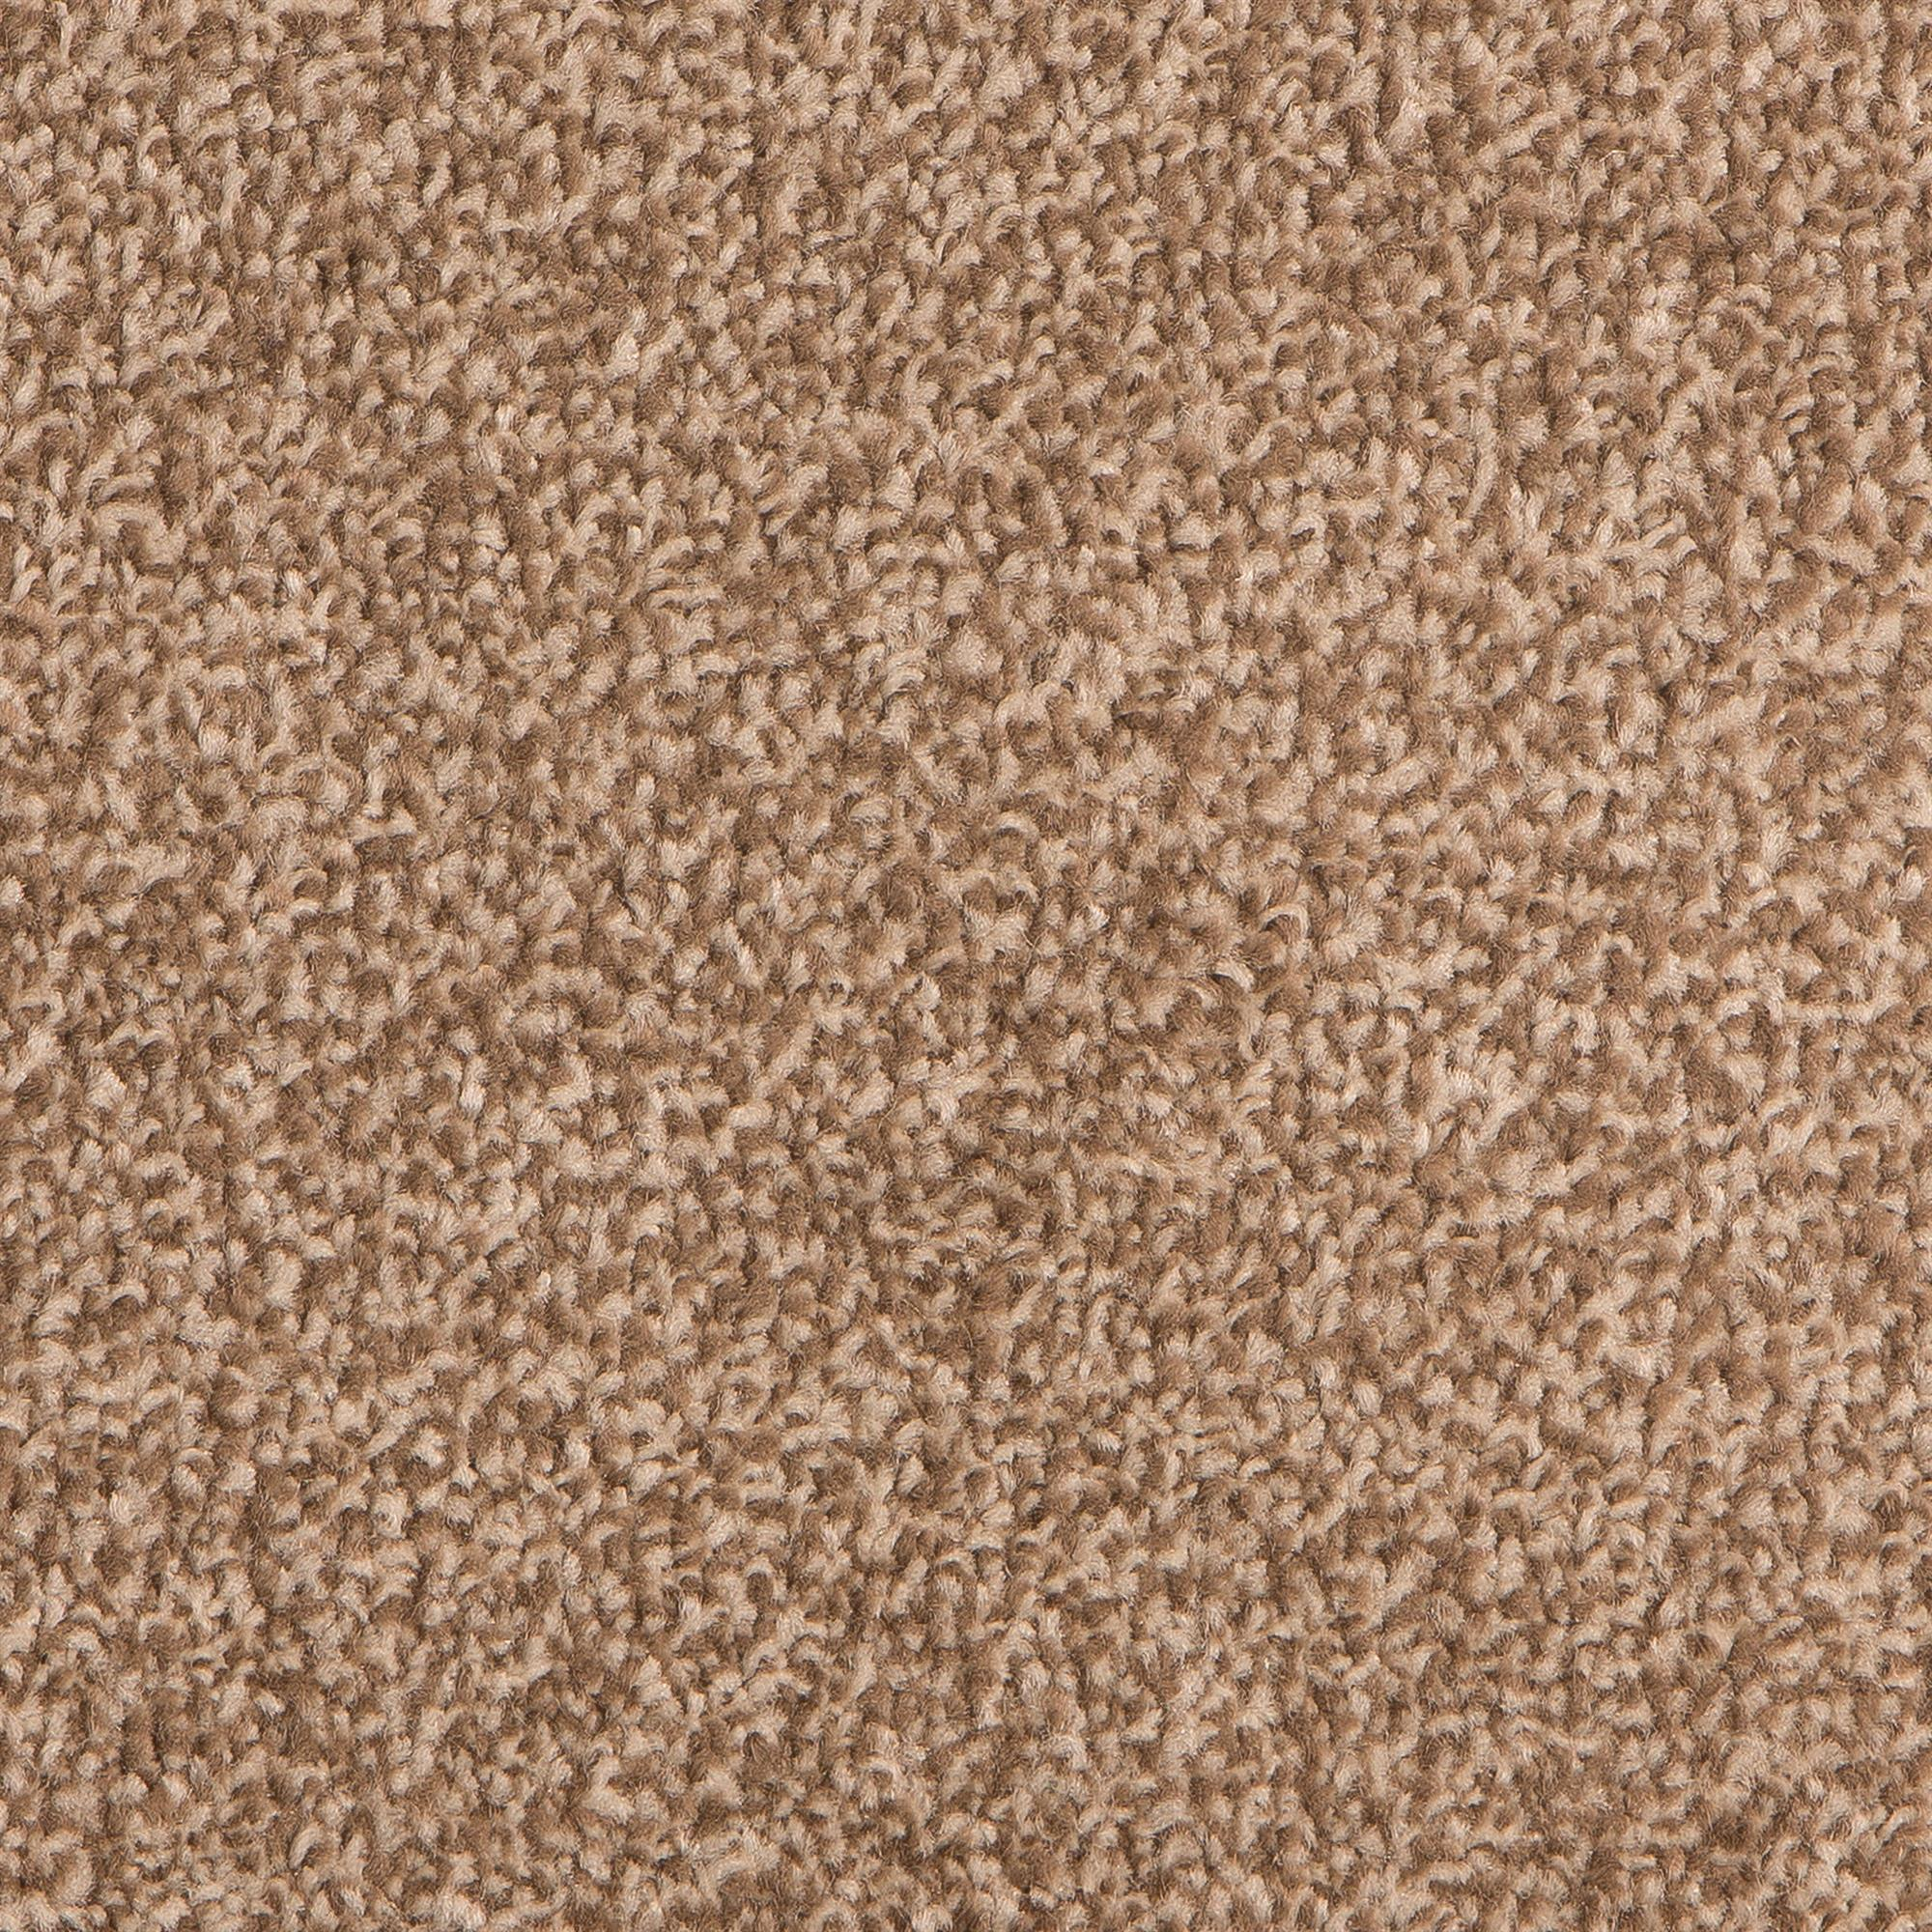 First Time Buyer Epic Carpet, Hessian, swatch